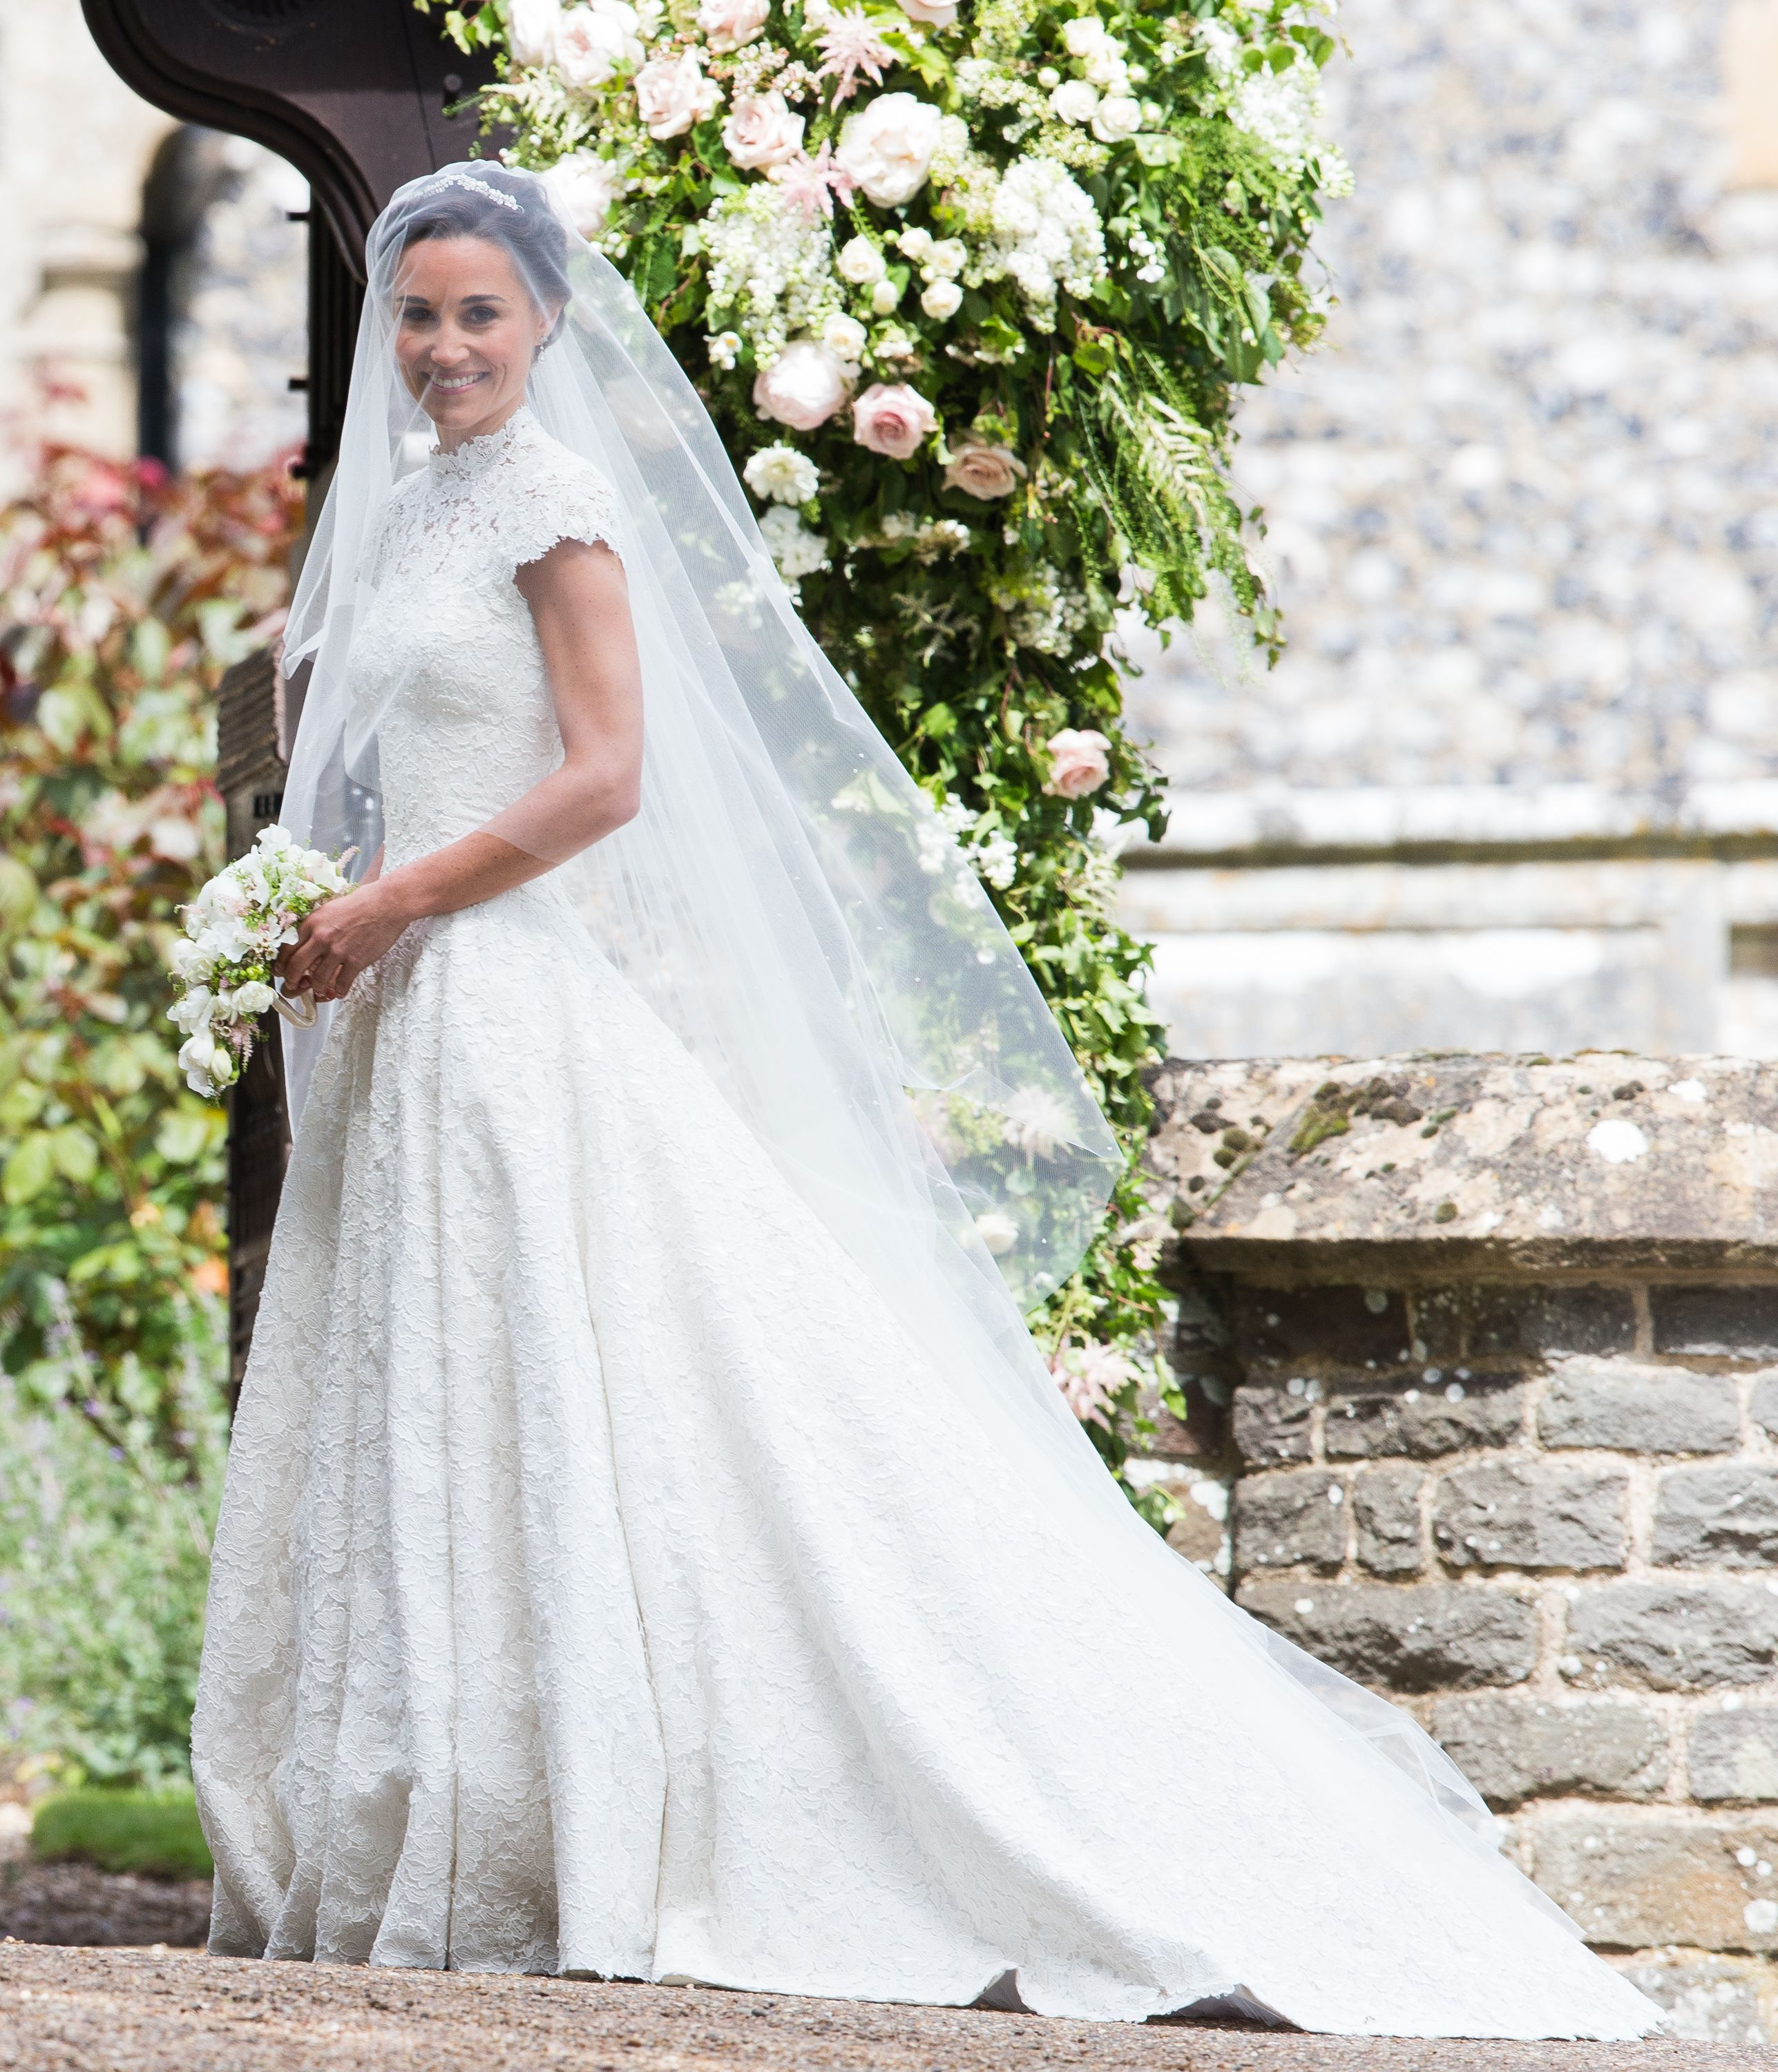 Best Celebrity Wedding Dresses The Most Stunning